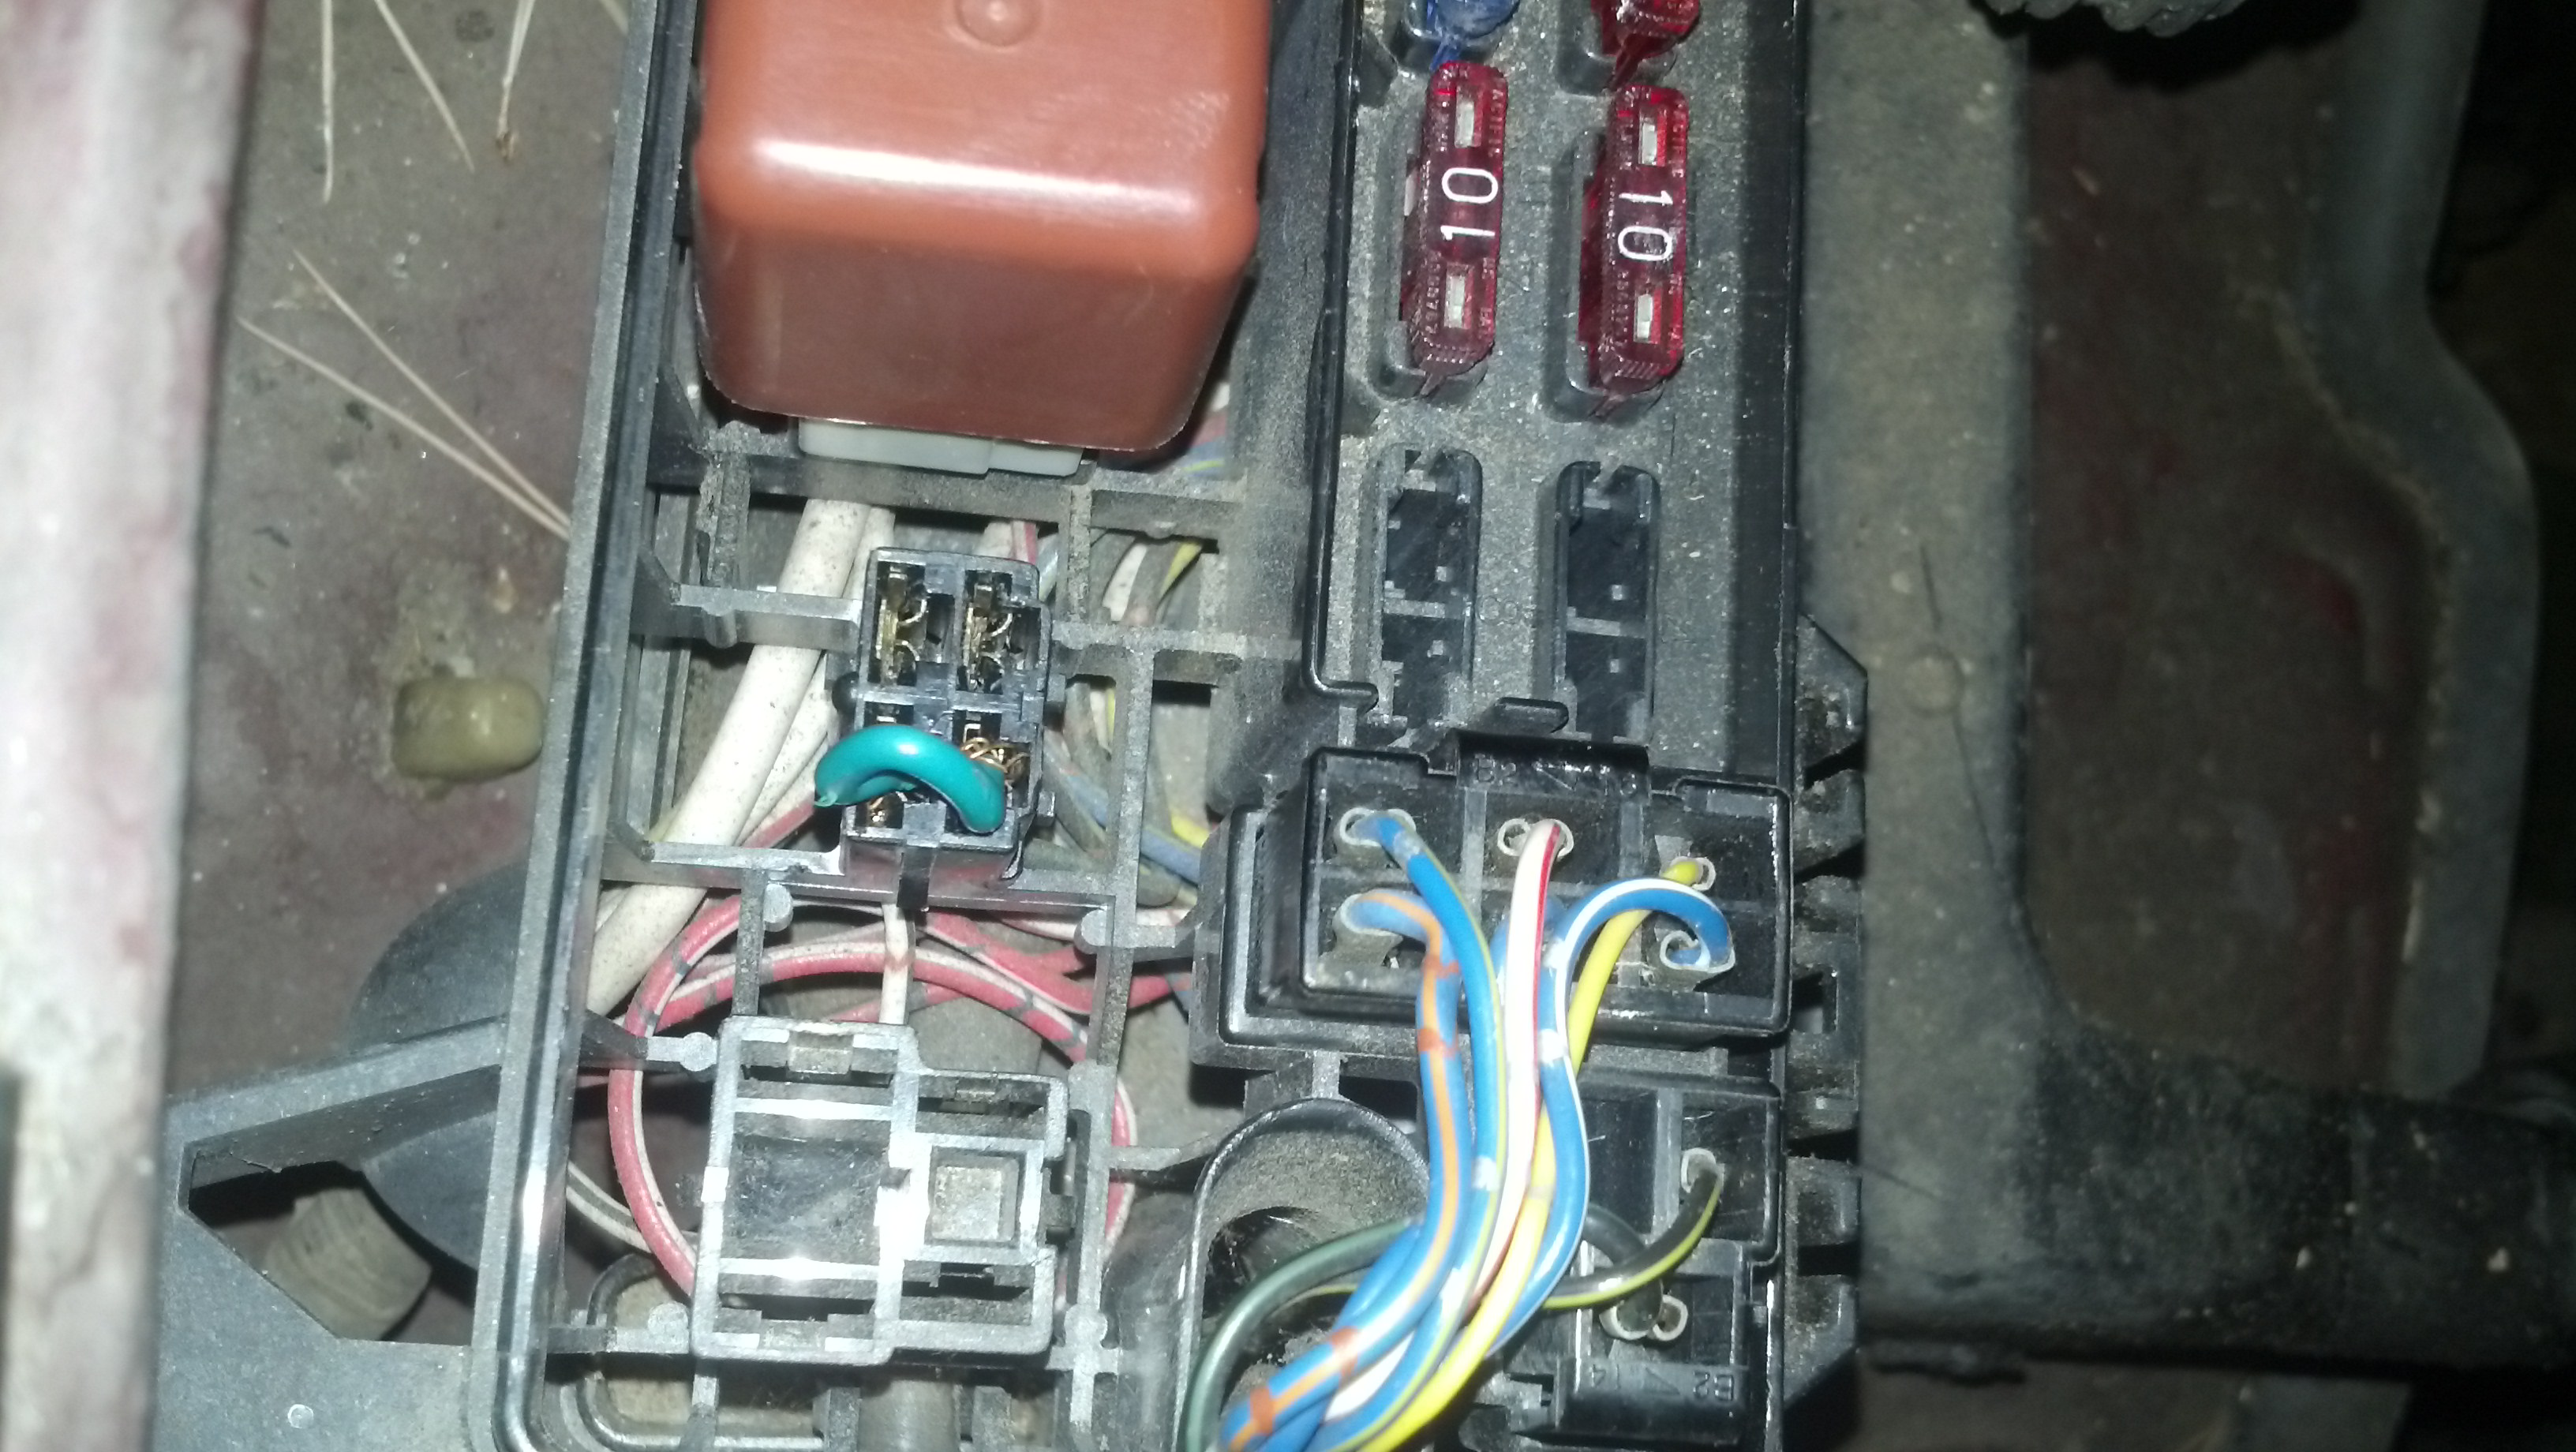 1992 toyota truck wiring diagram ge triclad induction motor fuel pump relay not working - yotatech forums